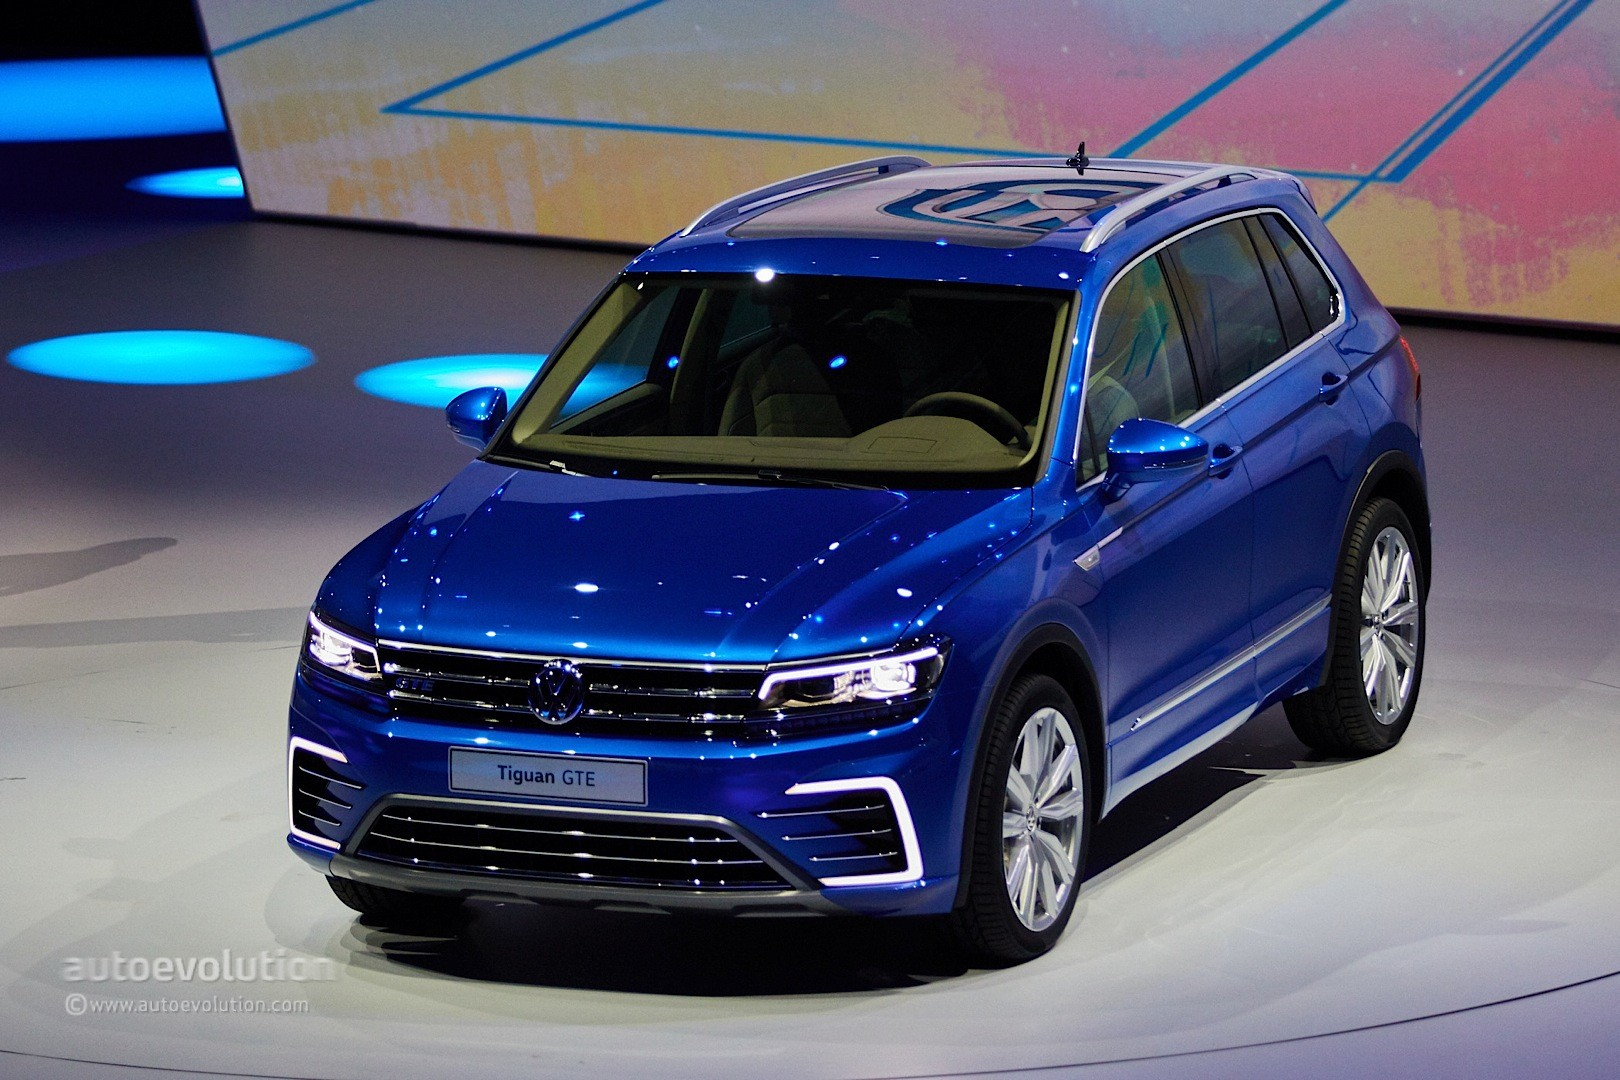 Tiguan Gte 2018 >> Volkswagen Tiguan GTE Concept Revealed with 218 PS and 50 KM Electric Range - autoevolution